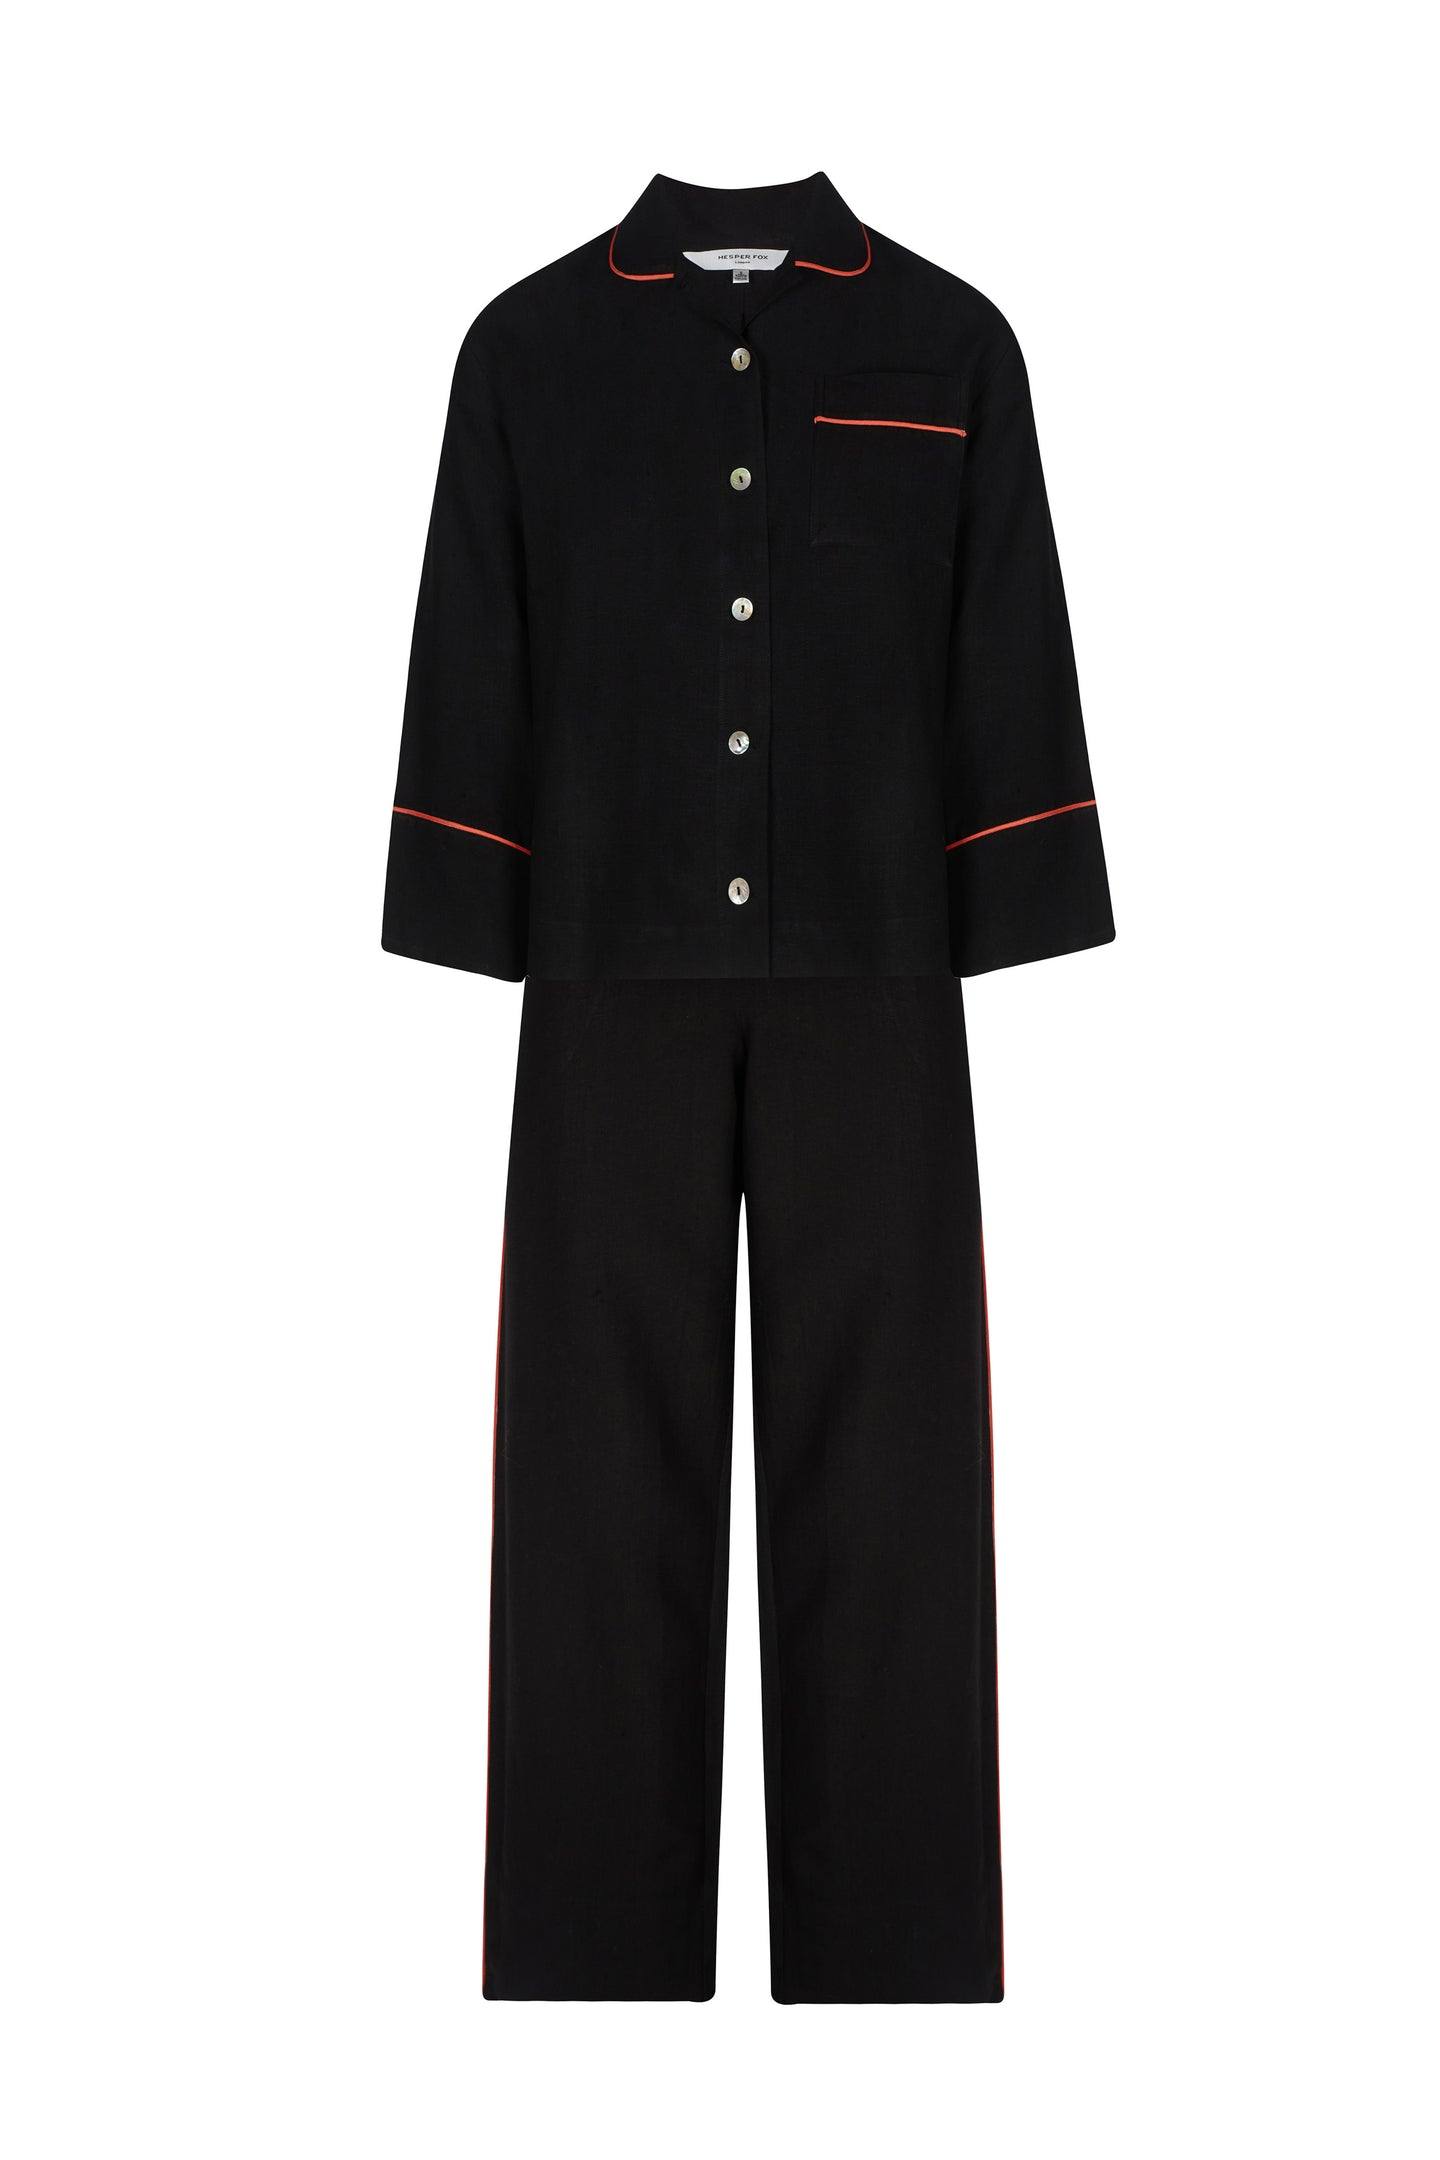 Aubrey Black Linen Pyjama Set with Coral Piping